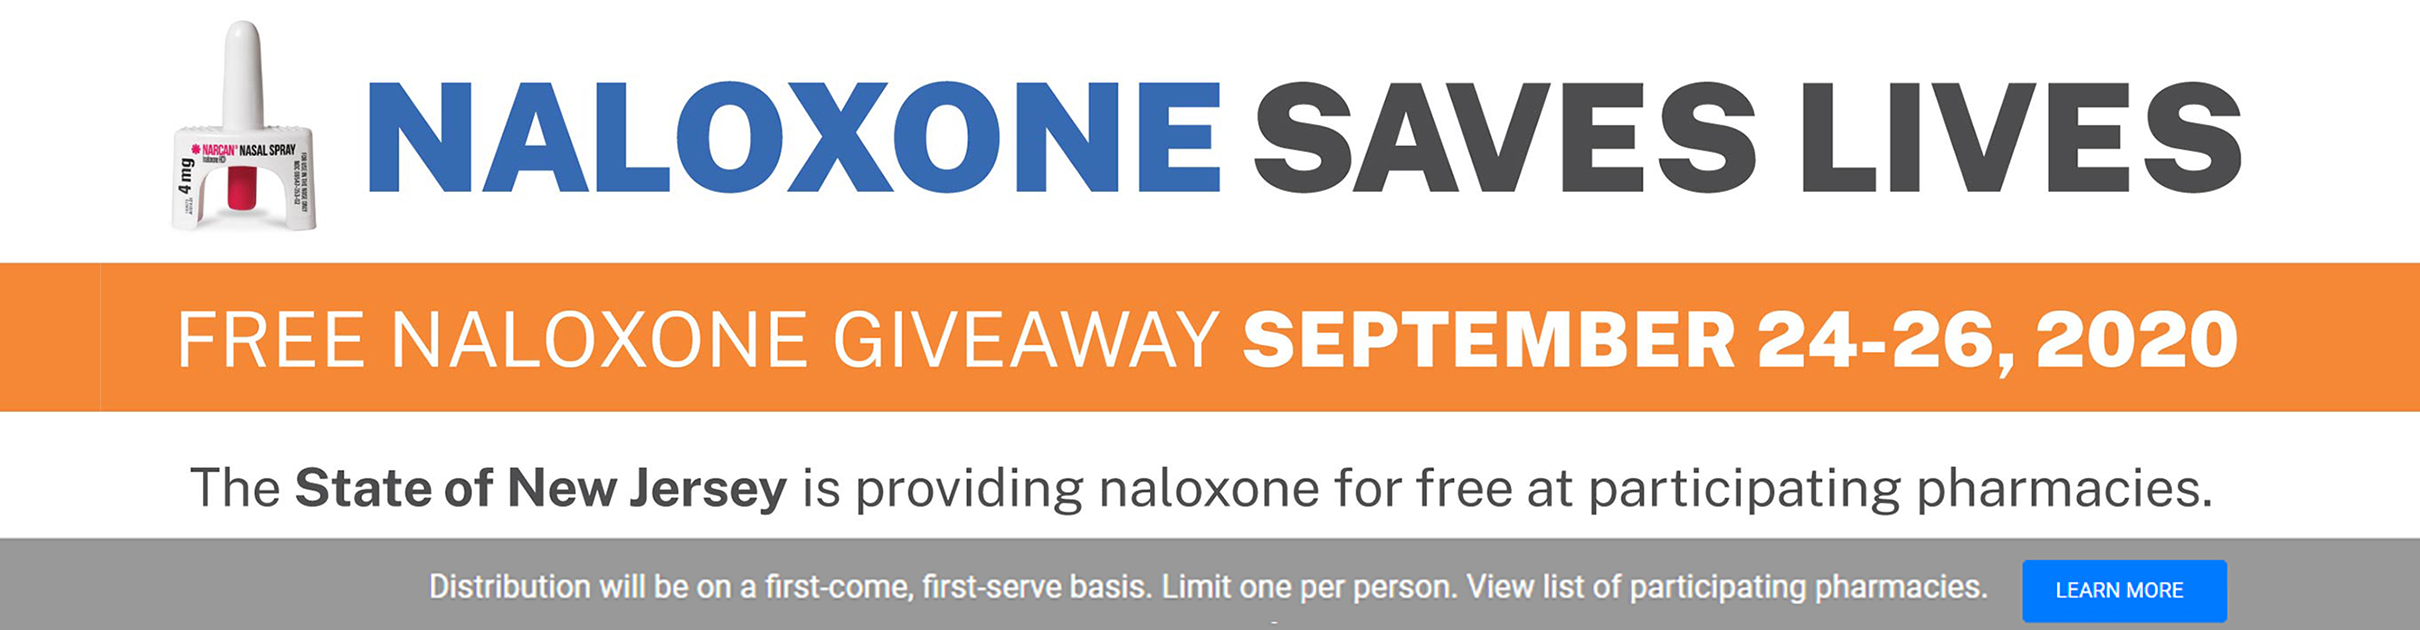 Naloxone can reverse opioid overdoses. NJ Human Services is making the opioid overdose reversal drug naloxone available for free September 24th to 26th at participating pharmacies throughout New Jersey.